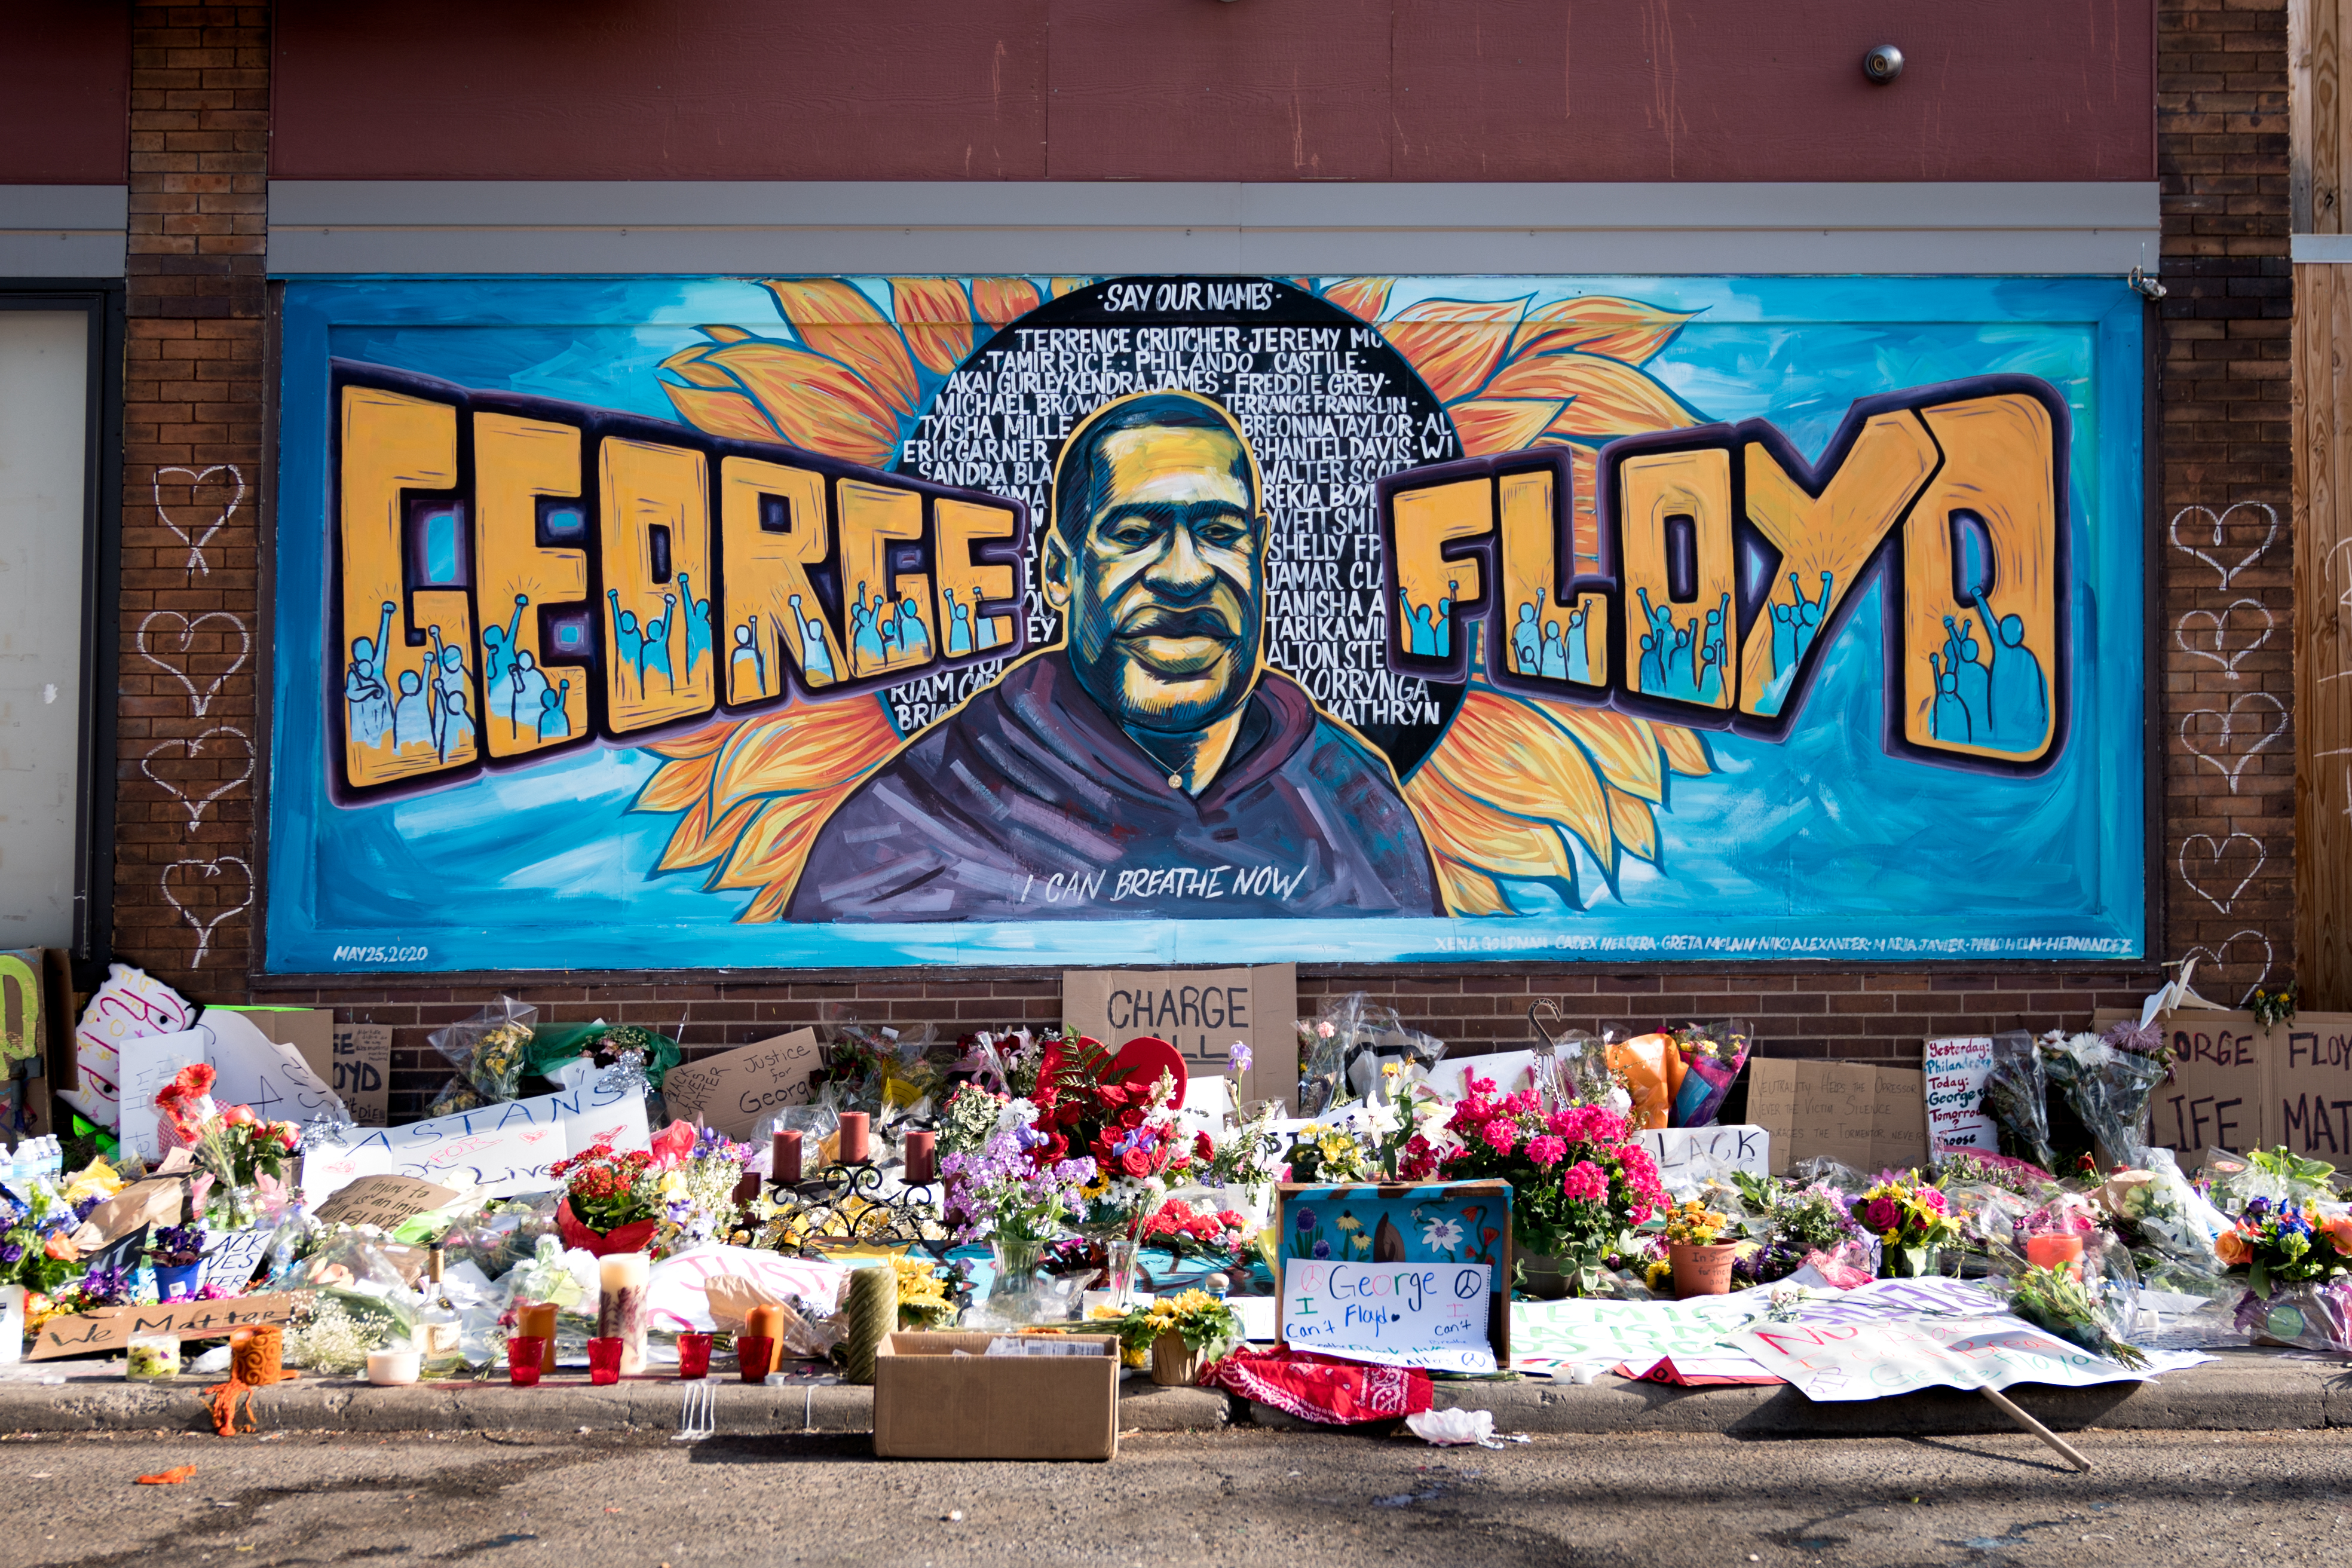 Graffiti in Minneapolis (USA) honouring George Floyd, a victim of police brutality. (Photo: reproduction)